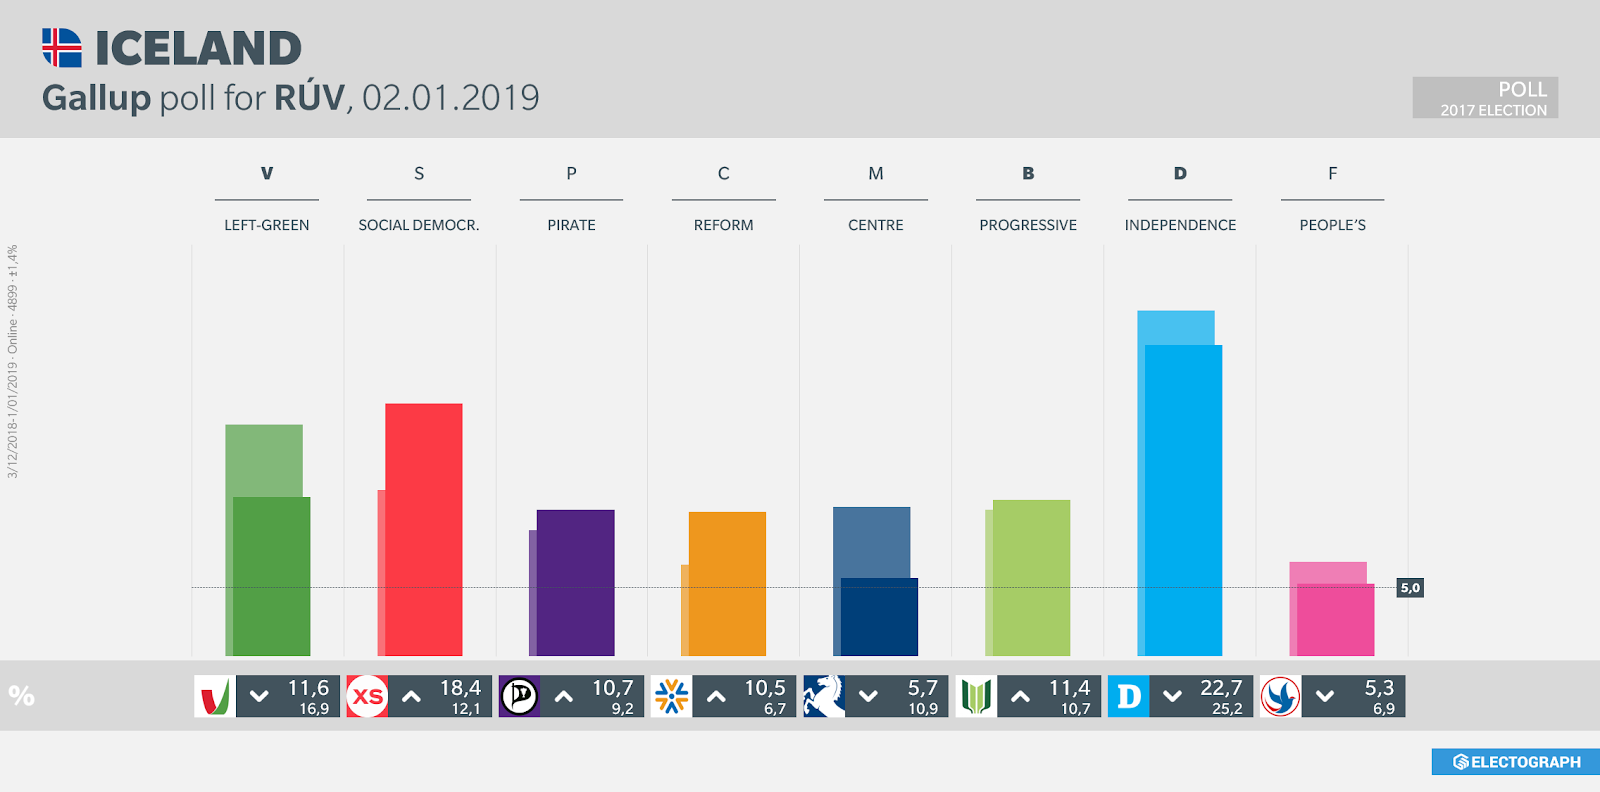 ICELAND: Gallup poll chart for RÚV, 2 January 2019